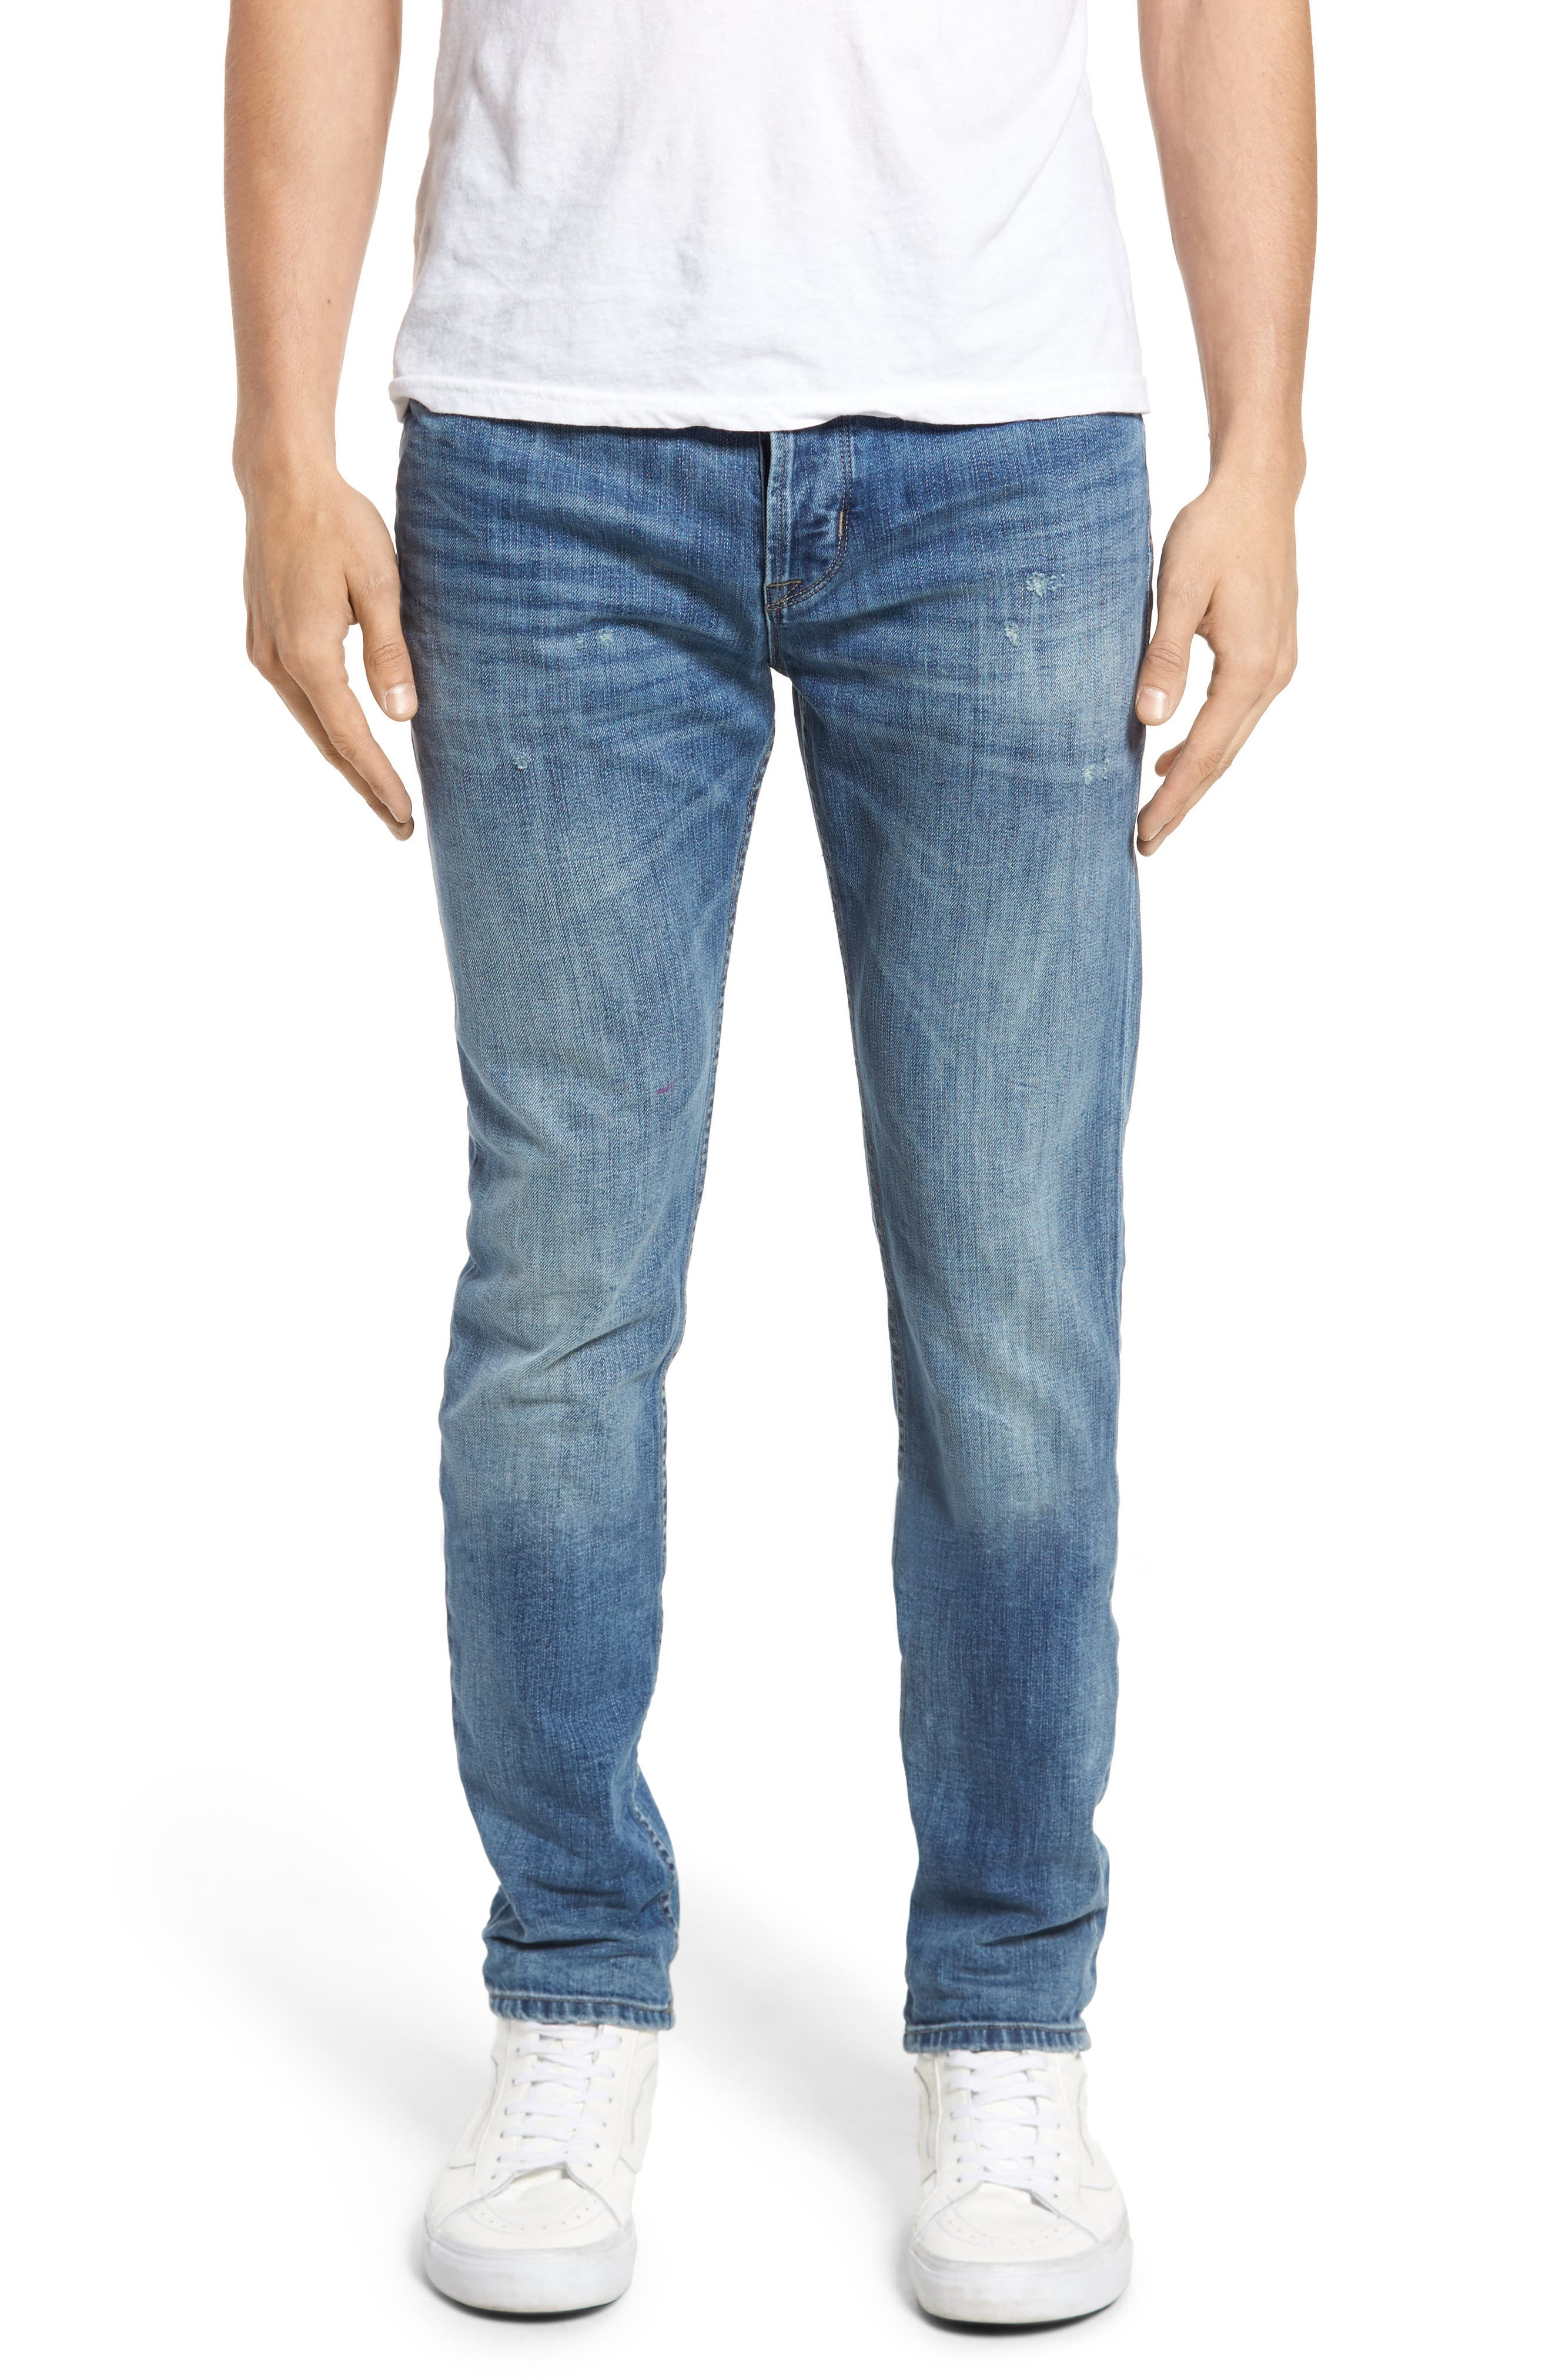 Axl Skinny Fit Jeans,                         Main,                         color, RACKING